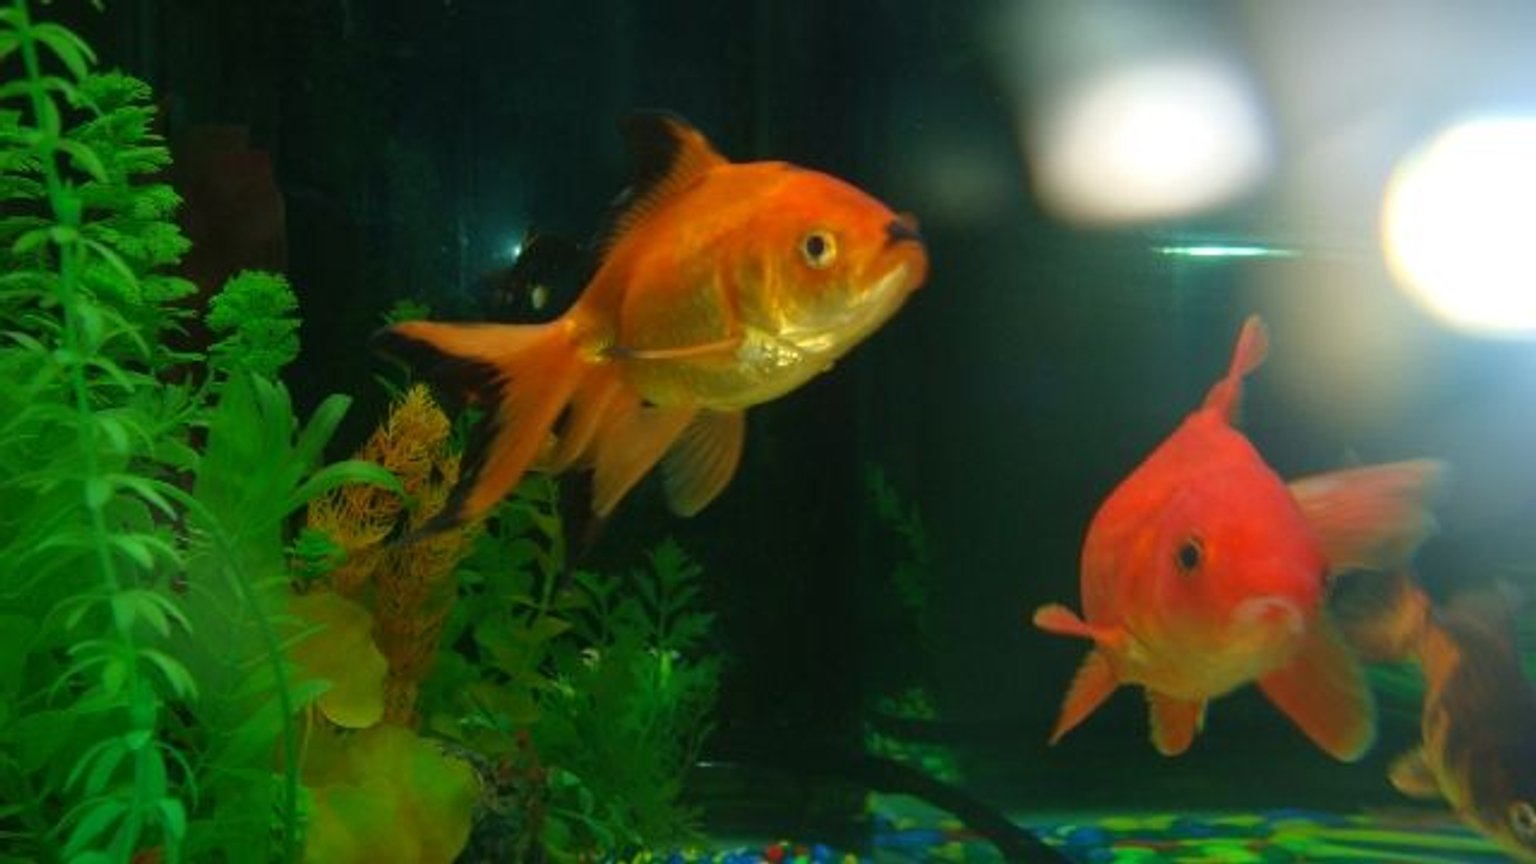 freshwater fish - carassius auratus - fantail goldfish stocking in 60 gallons tank - my giant gold fish